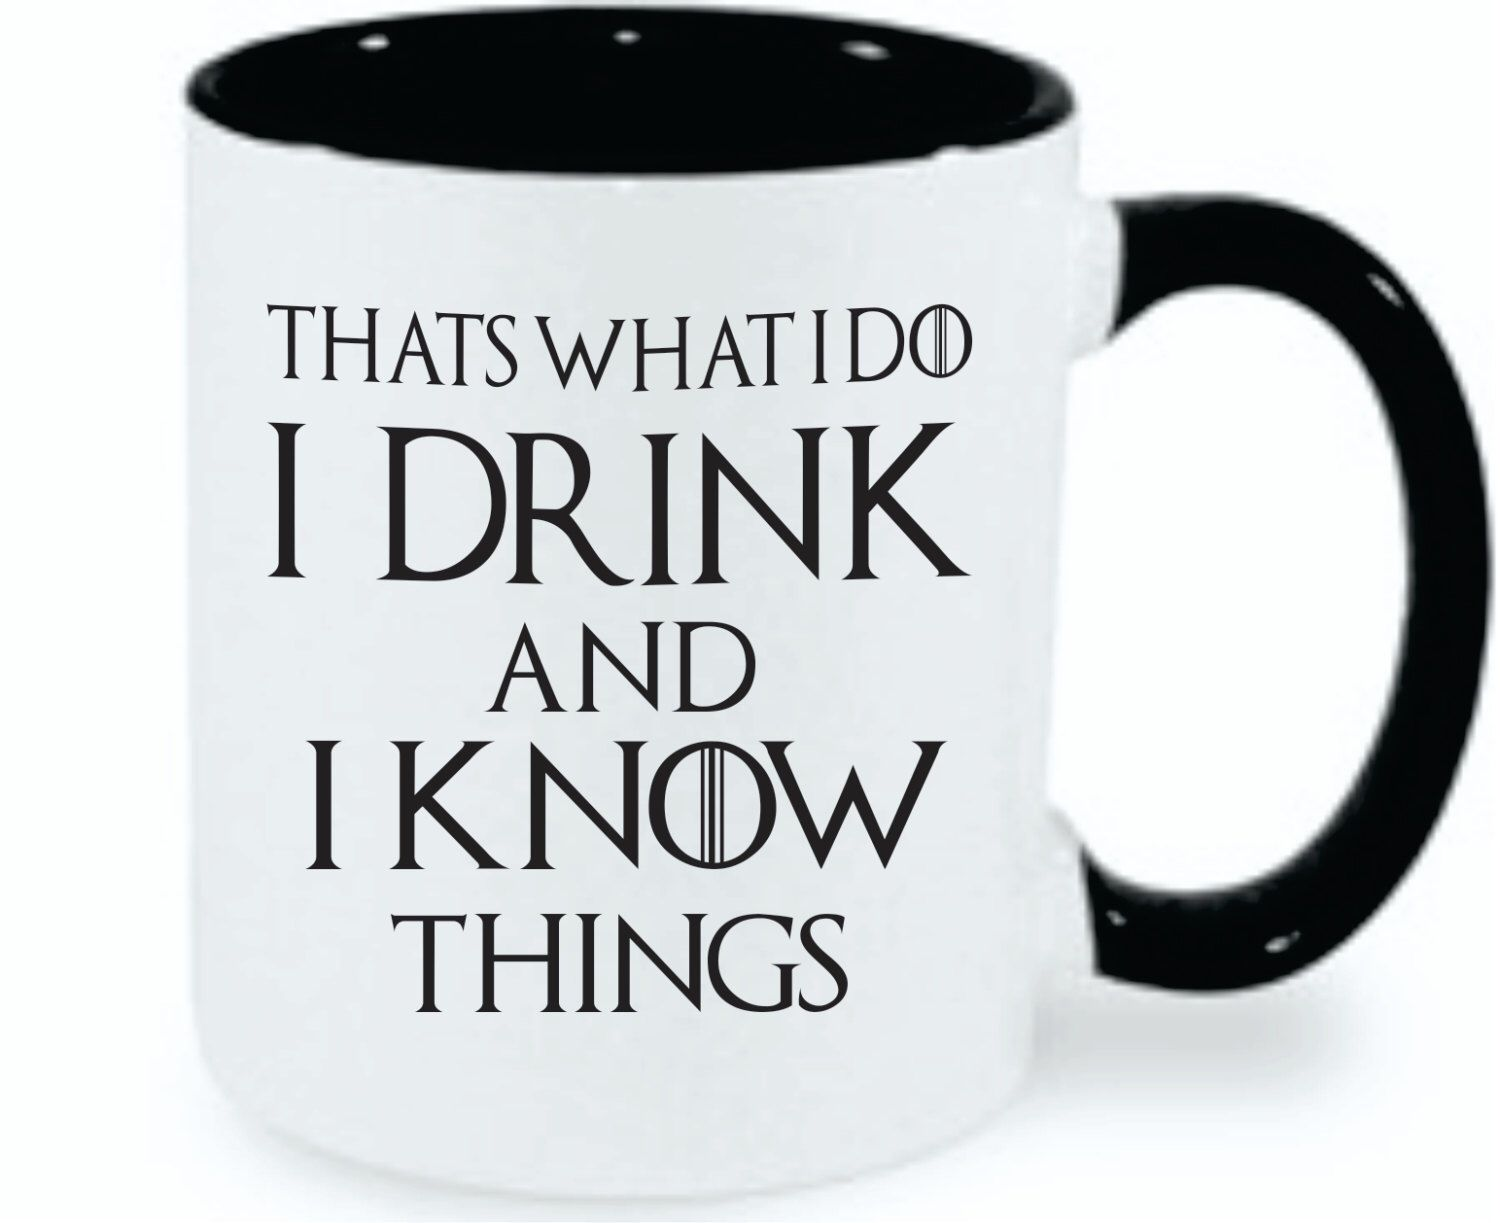 I Drink and I Know Things (That's What I Do) | Game Of Thrones | Tyrion Lannister | Funny Mug | Game Of Thrones Quote | Fandom | GOT| Gift by djndesignstudio on Etsy https://www.etsy.com/listing/454633266/i-drink-and-i-know-things-thats-what-i